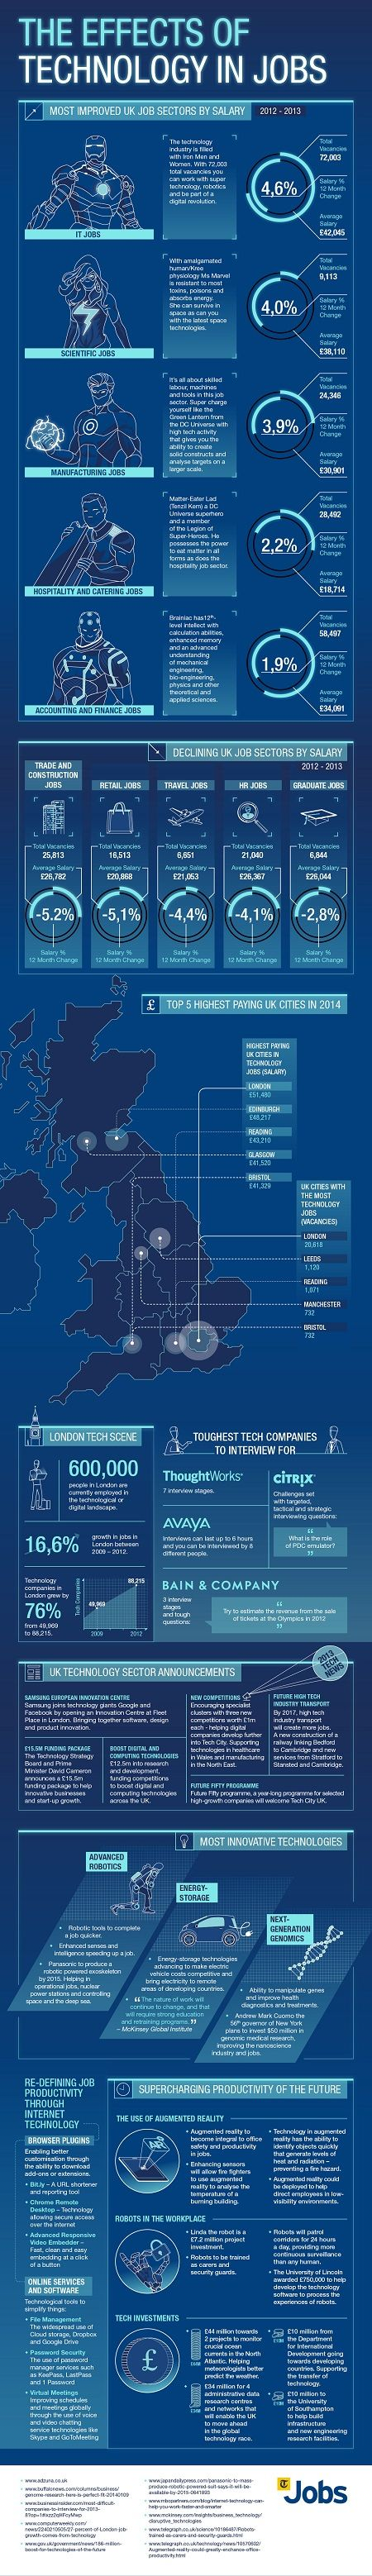 Poster design jobs uk - The Effects Of Technology In Jobs A New Infographic Just Published On Social